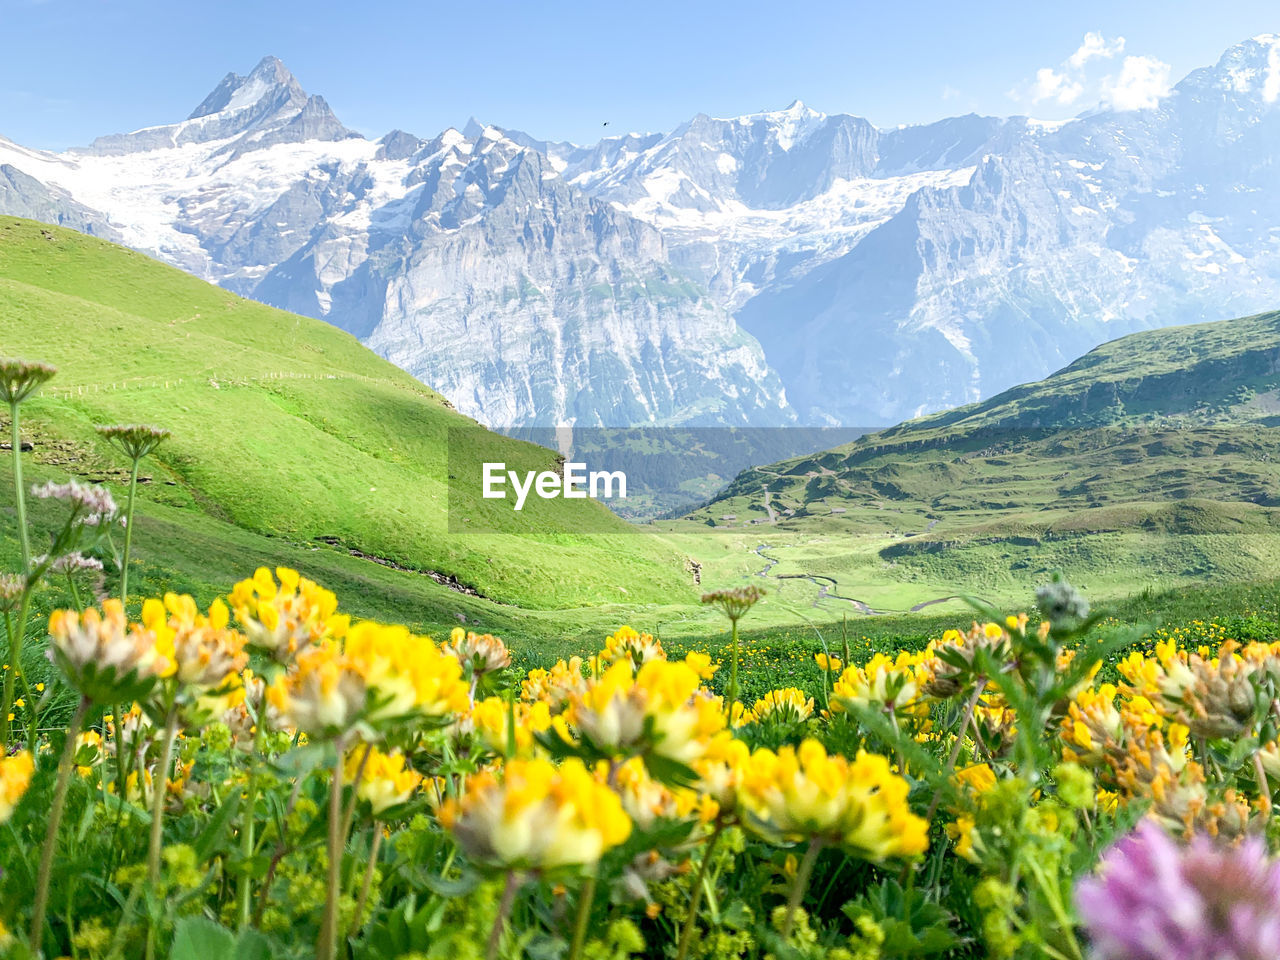 SCENIC VIEW OF FLOWERING PLANTS AND MOUNTAINS